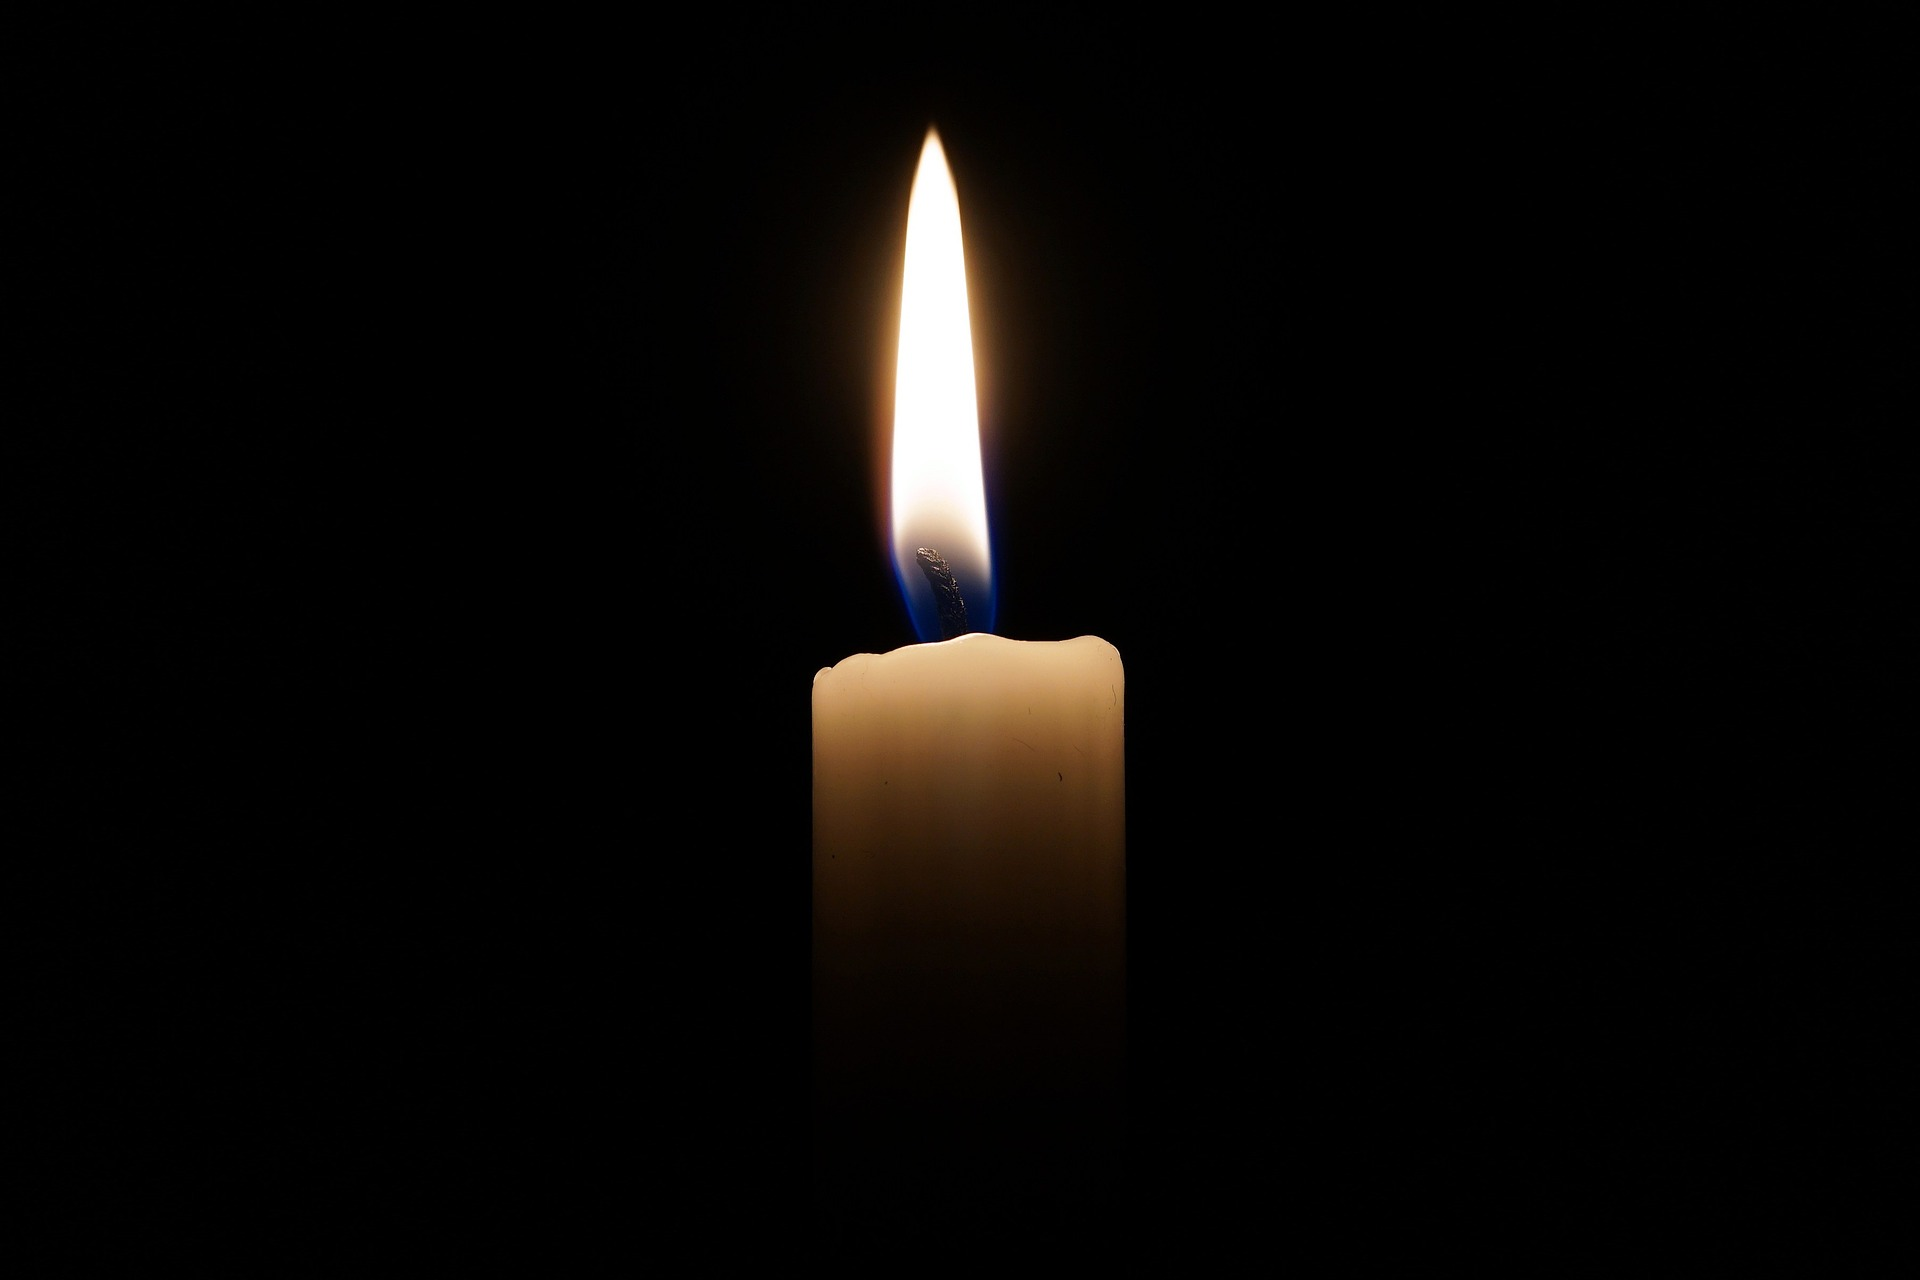 A picture of a candle in the dark